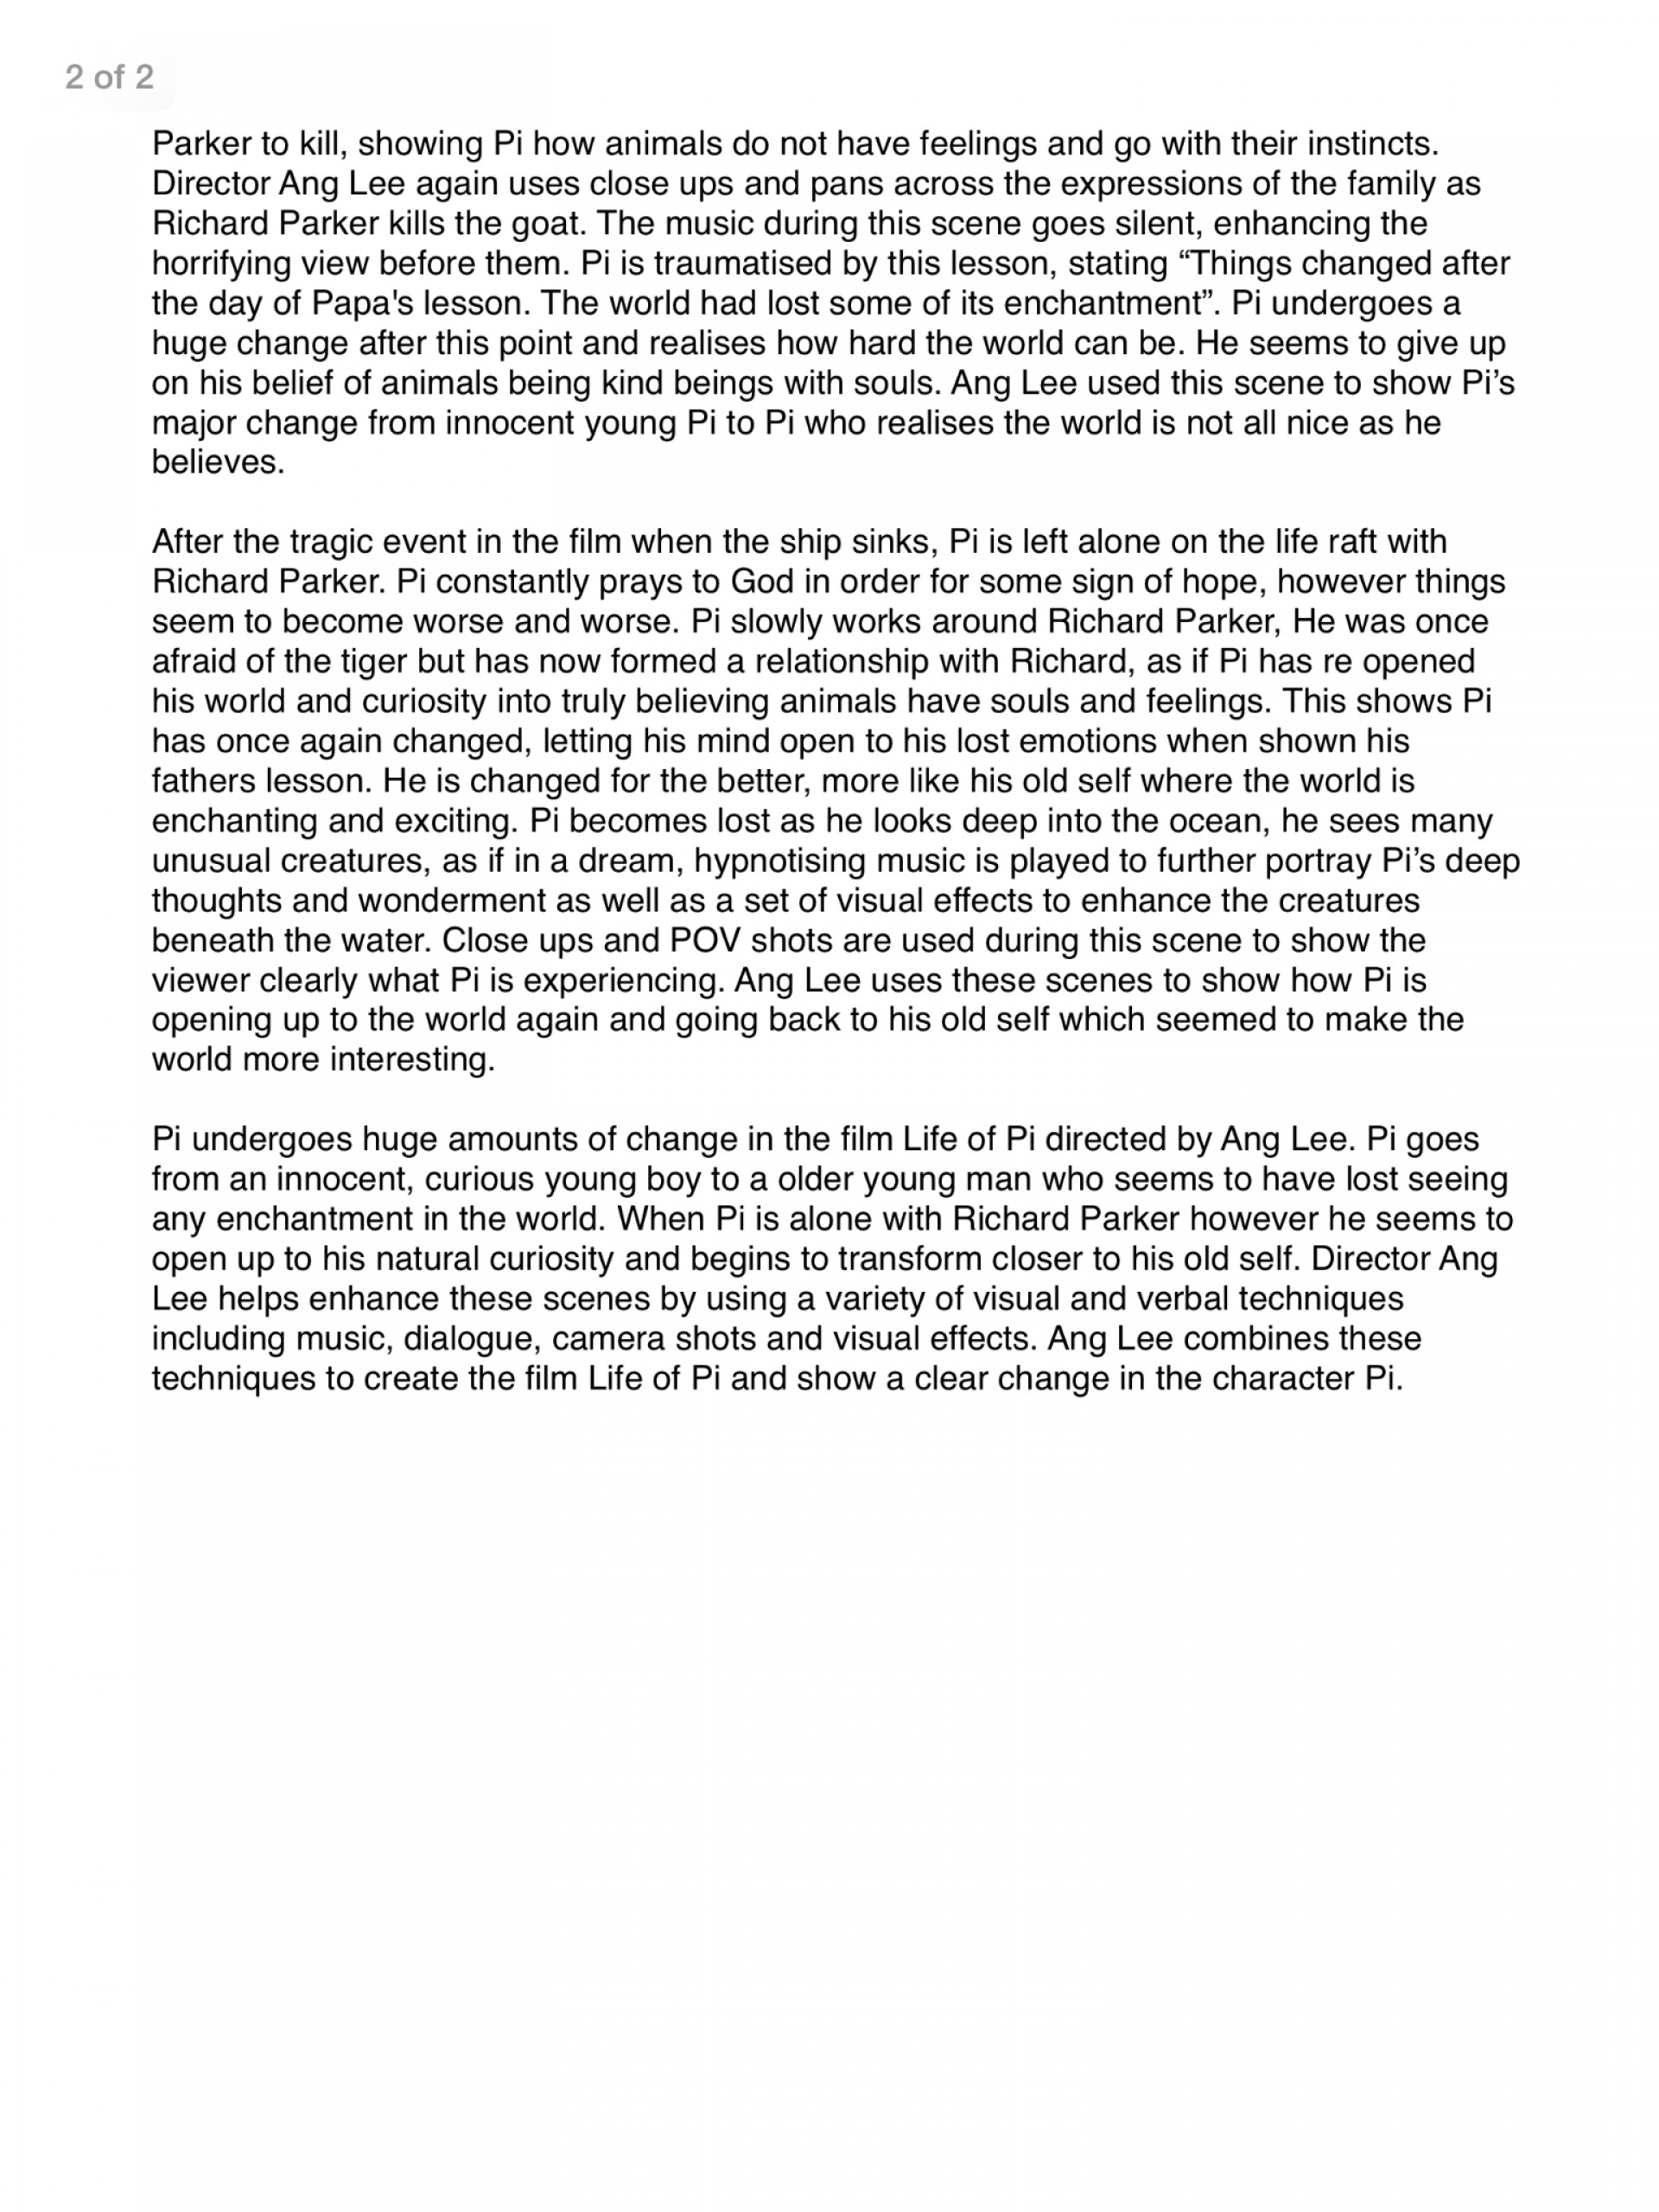 003 Essay Example Img 1650 Cause And Effect Of Remarkable Overpopulation 1920